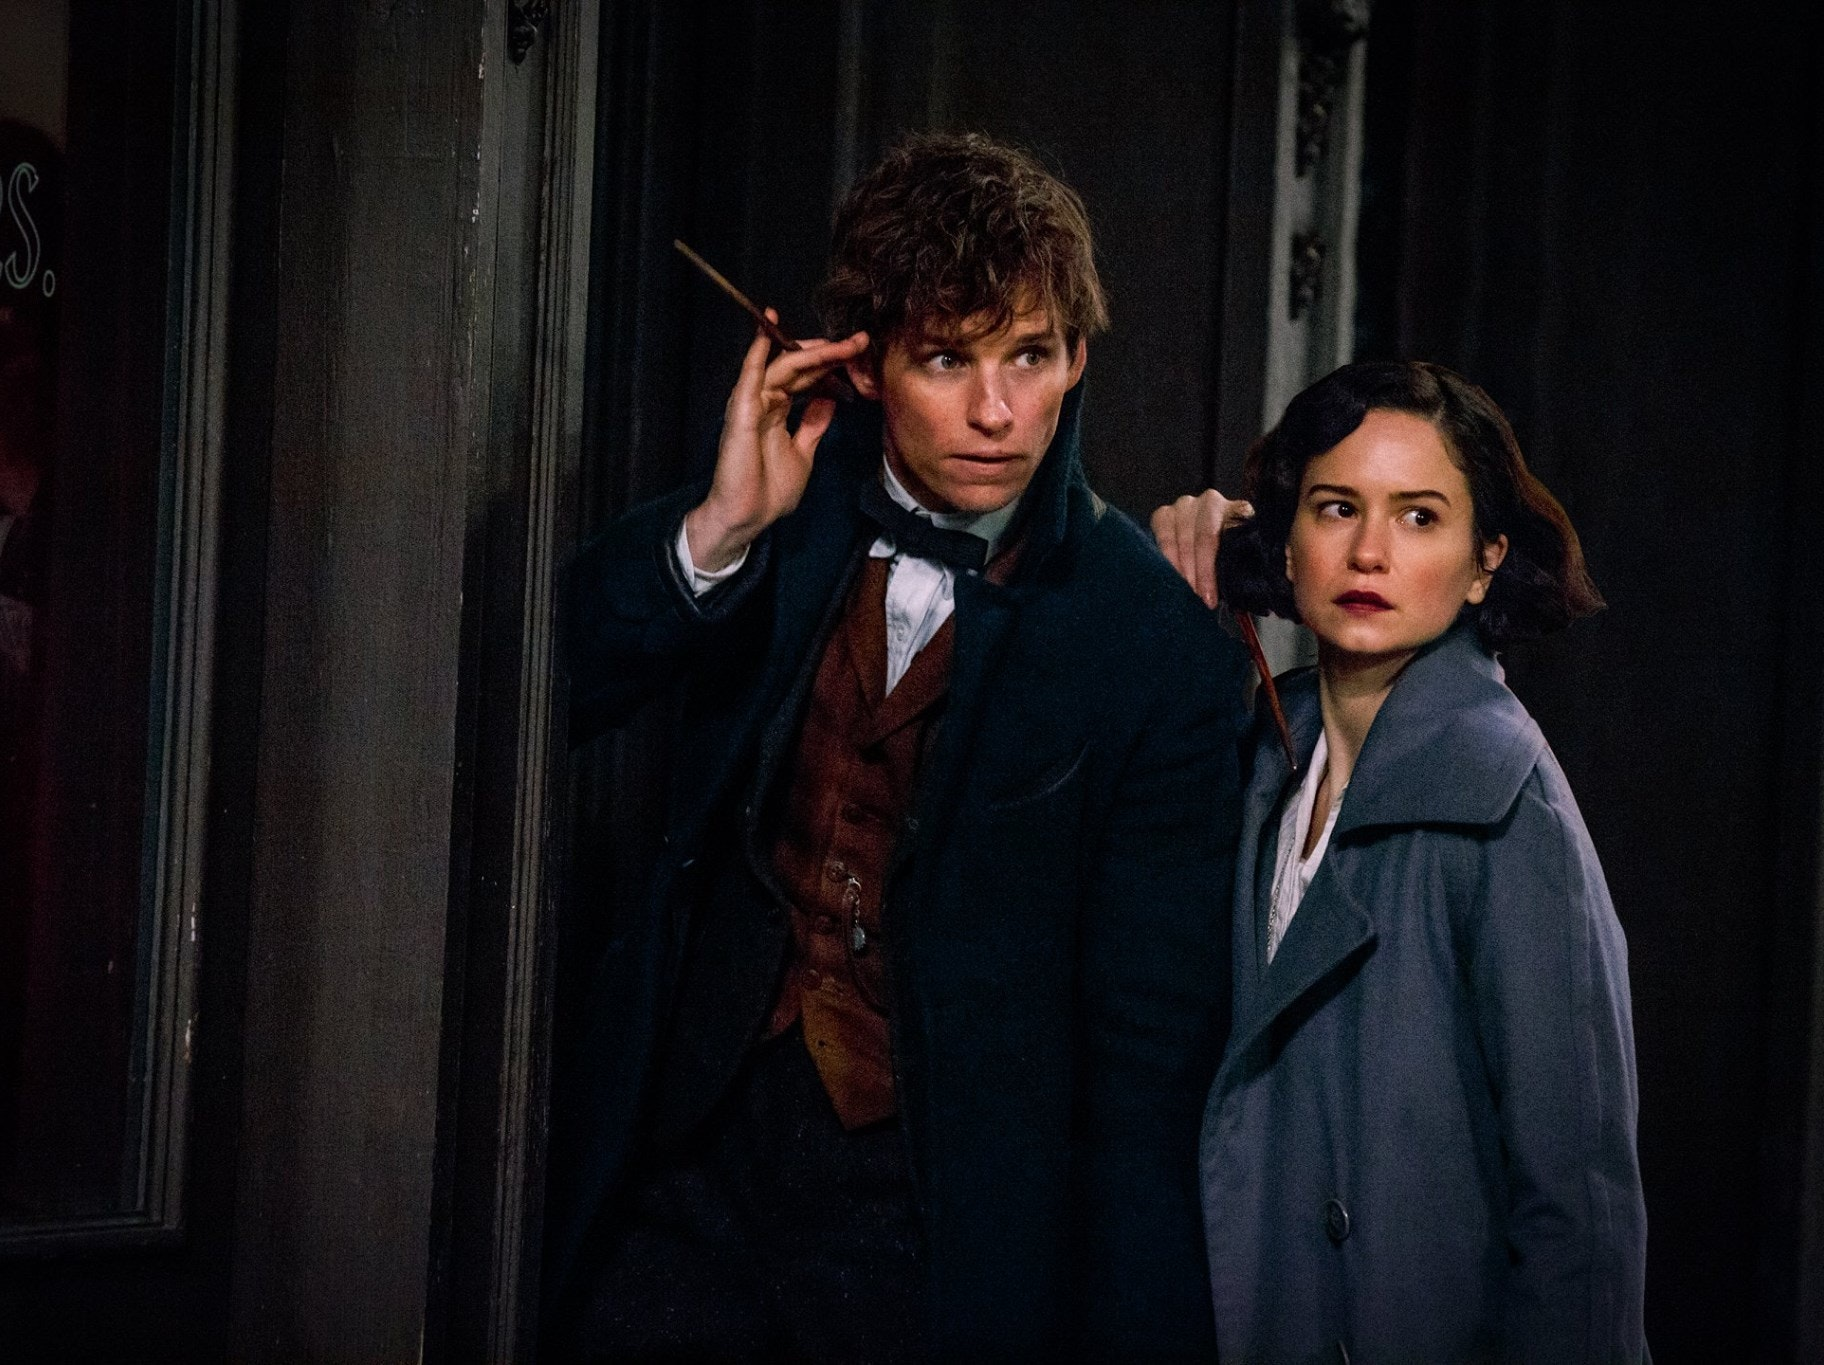 Eddie Redmayne and Katherine Waterston